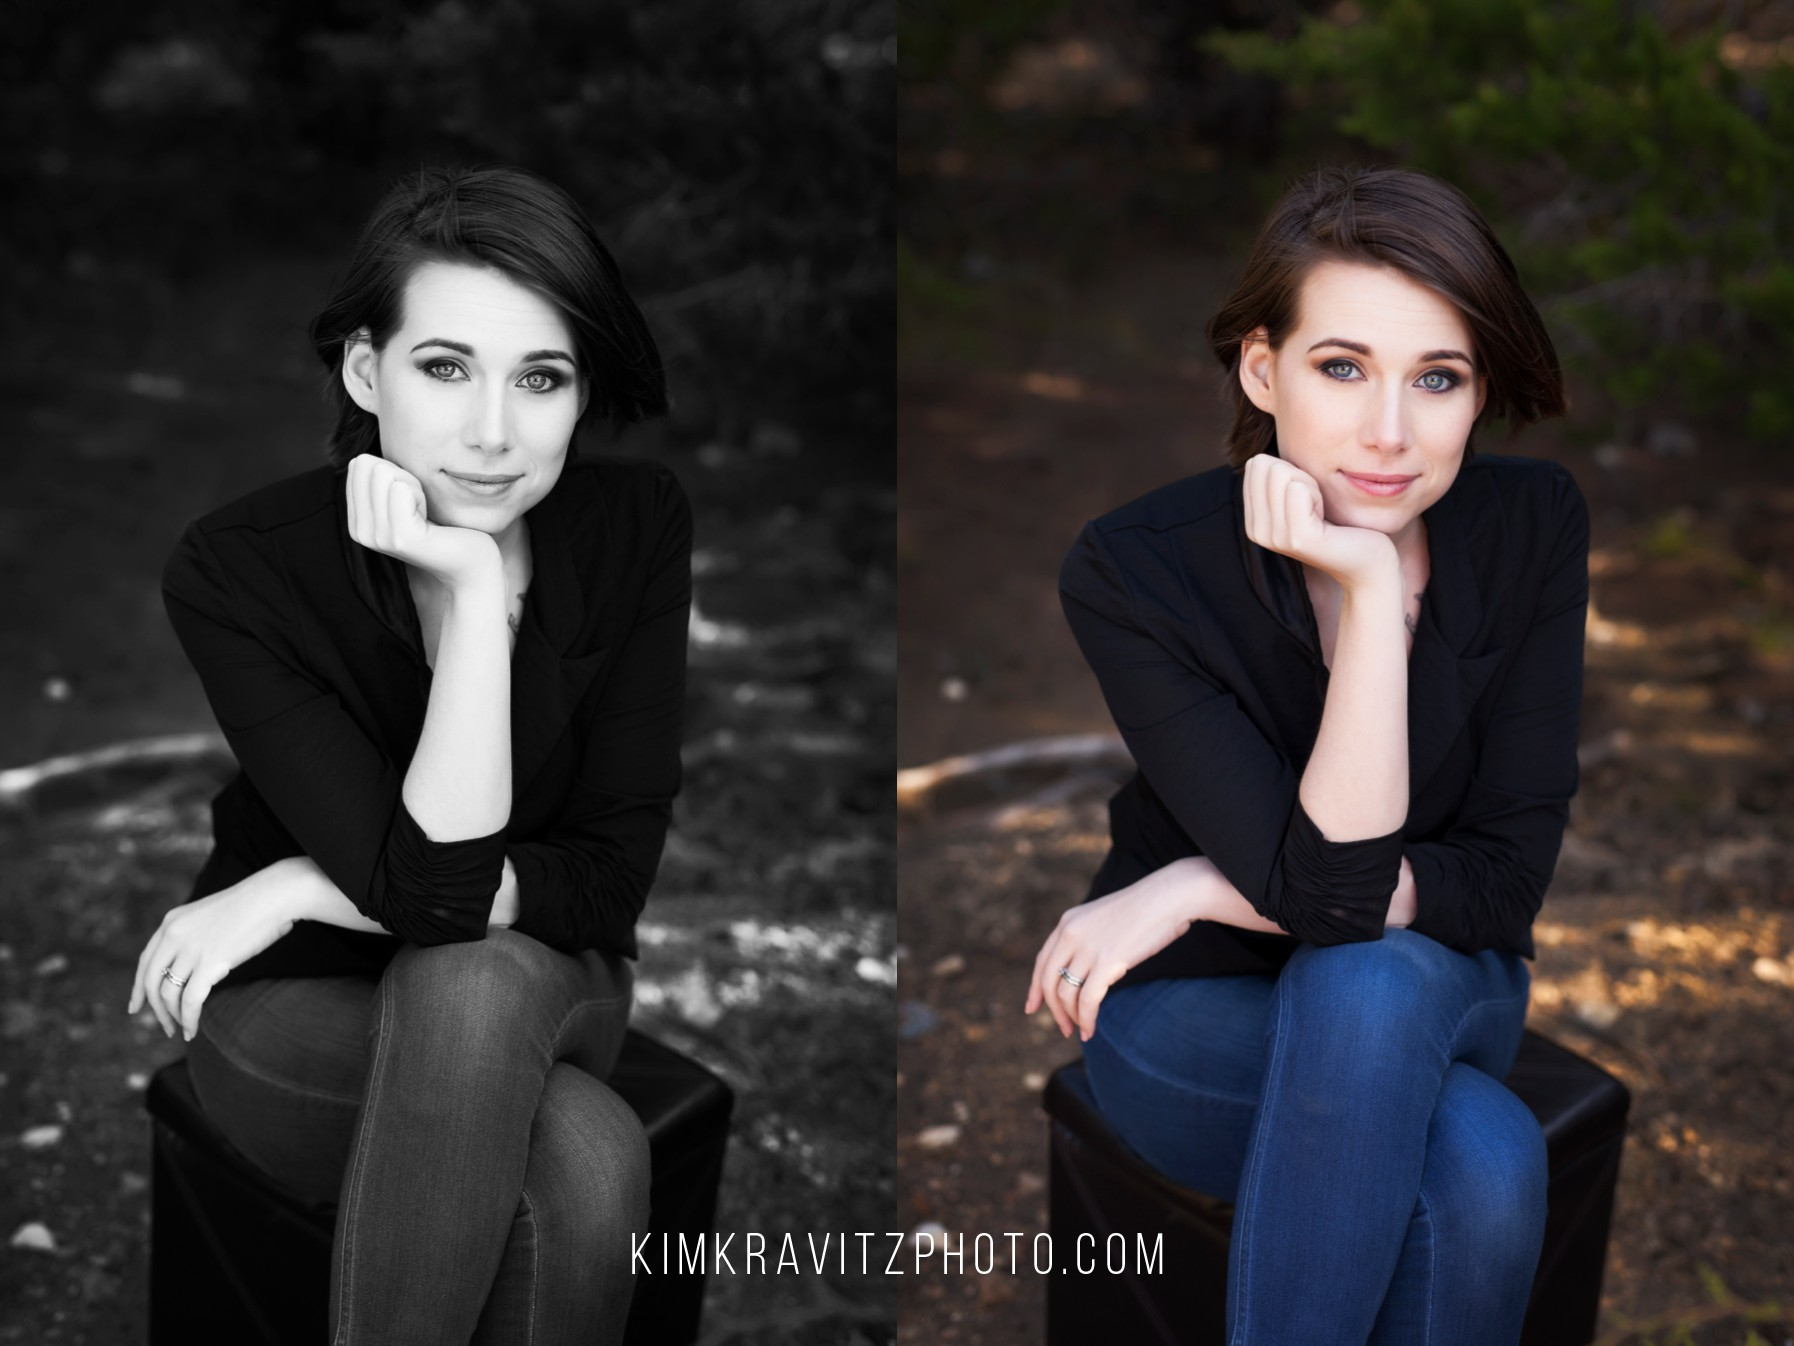 Photography Get Together in Southeast Kansas hosted by Kim Kravitz